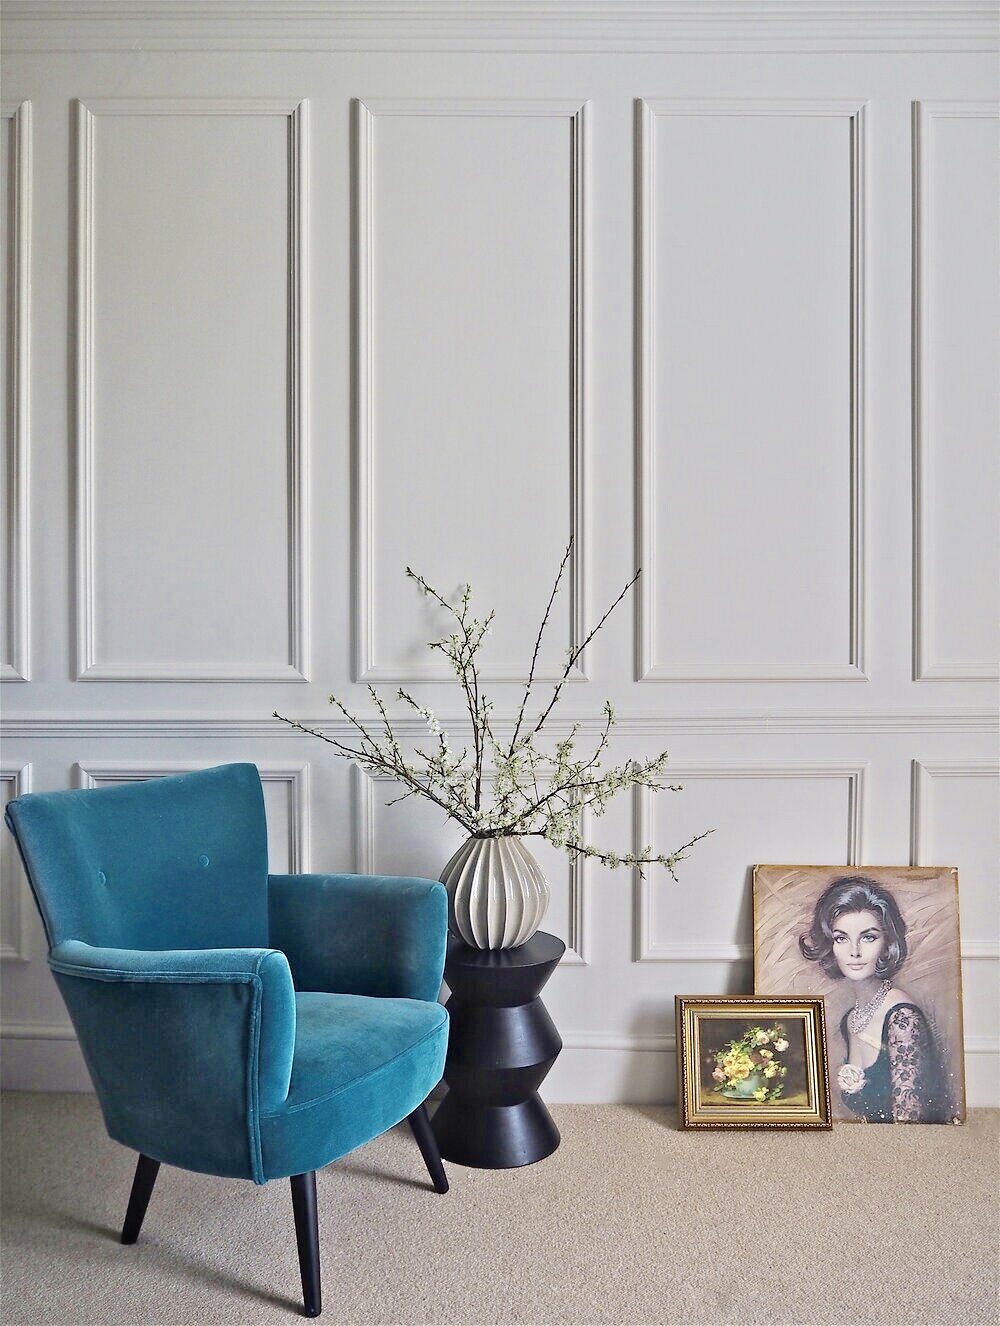 Diy This Parisian Style Wall Panelling, Wall Panels For Living Room